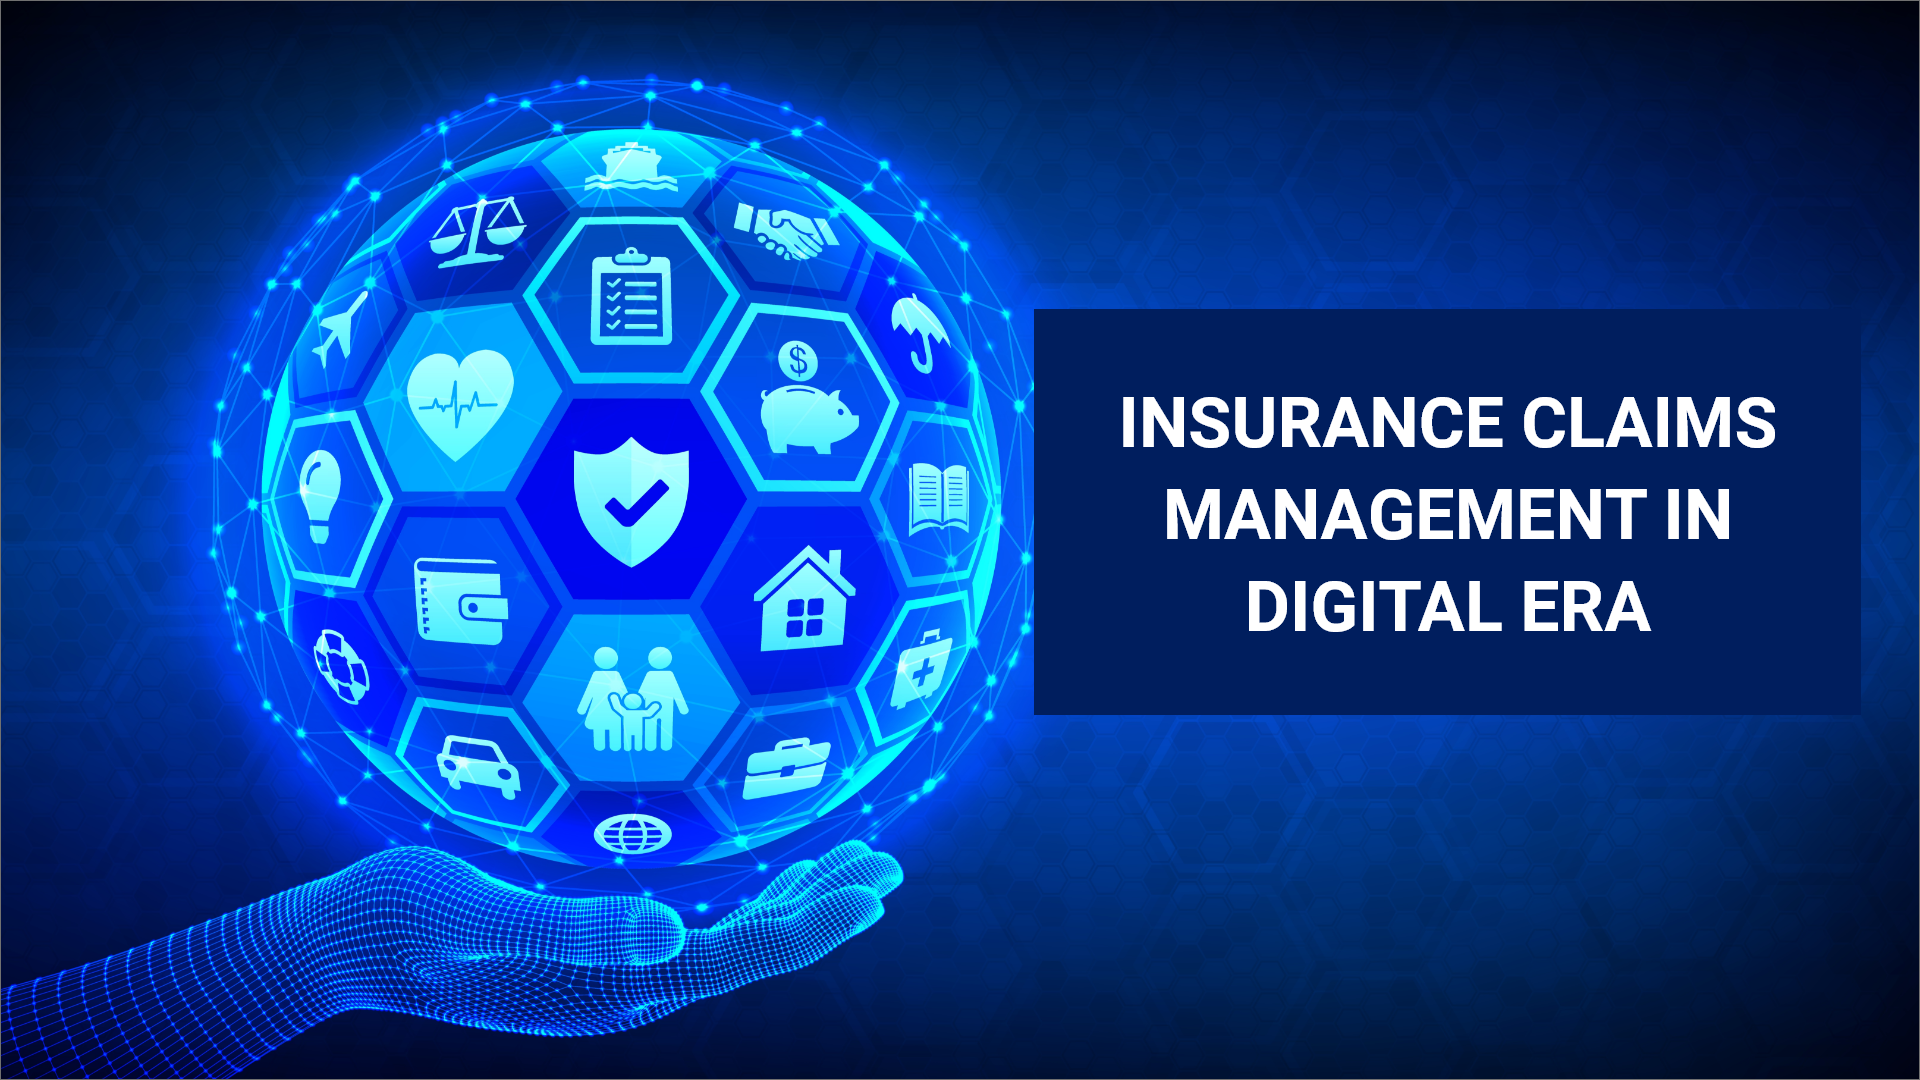 Insurance Claims Management in Digital Era - 47Billion